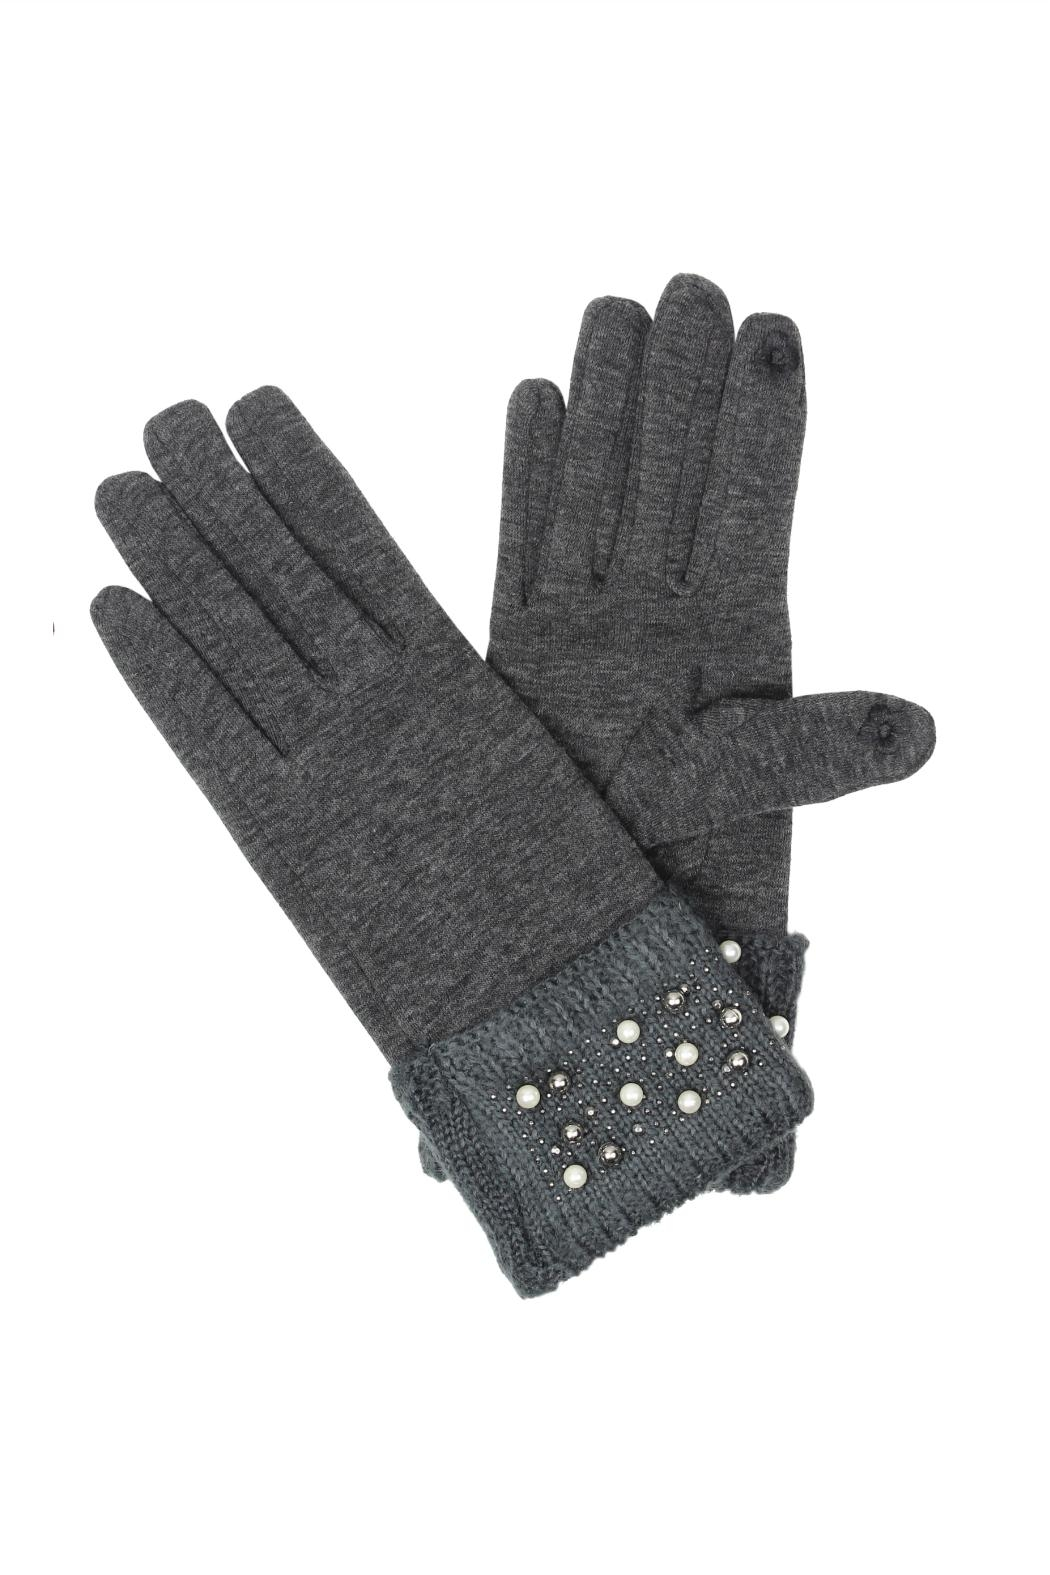 Victoria Leland Designs Pearl Texting Gloves - Front Cropped Image